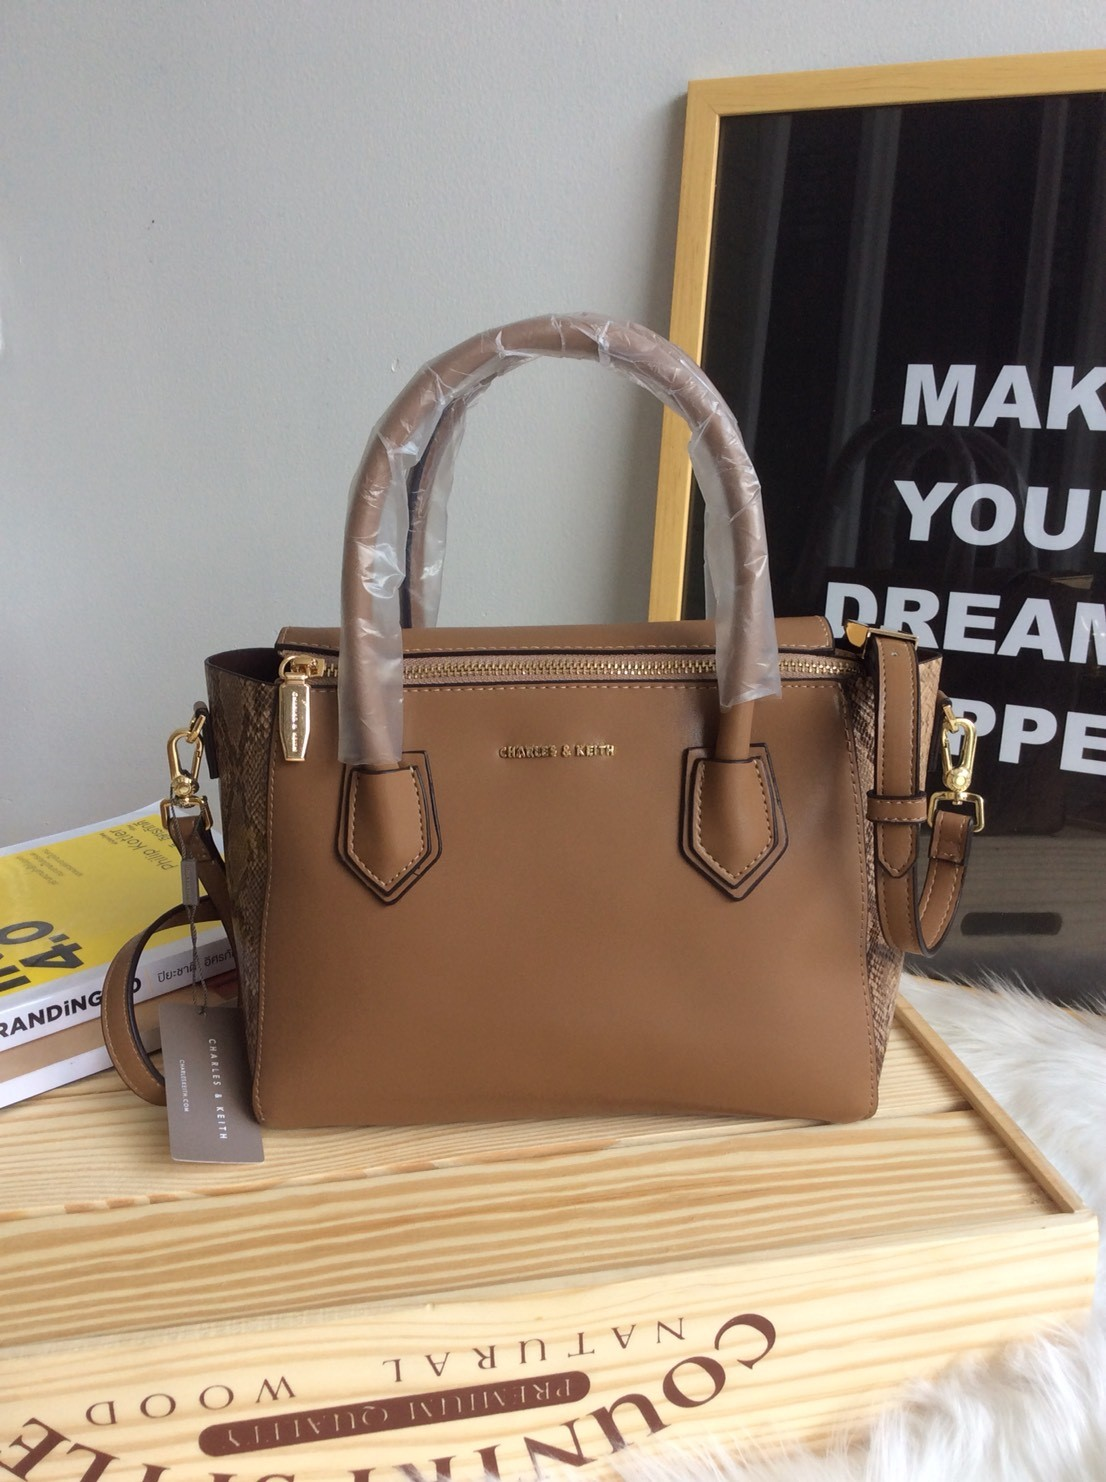 CHARLES & KEITH Double Zip Structured Bag * สินค้า outlet